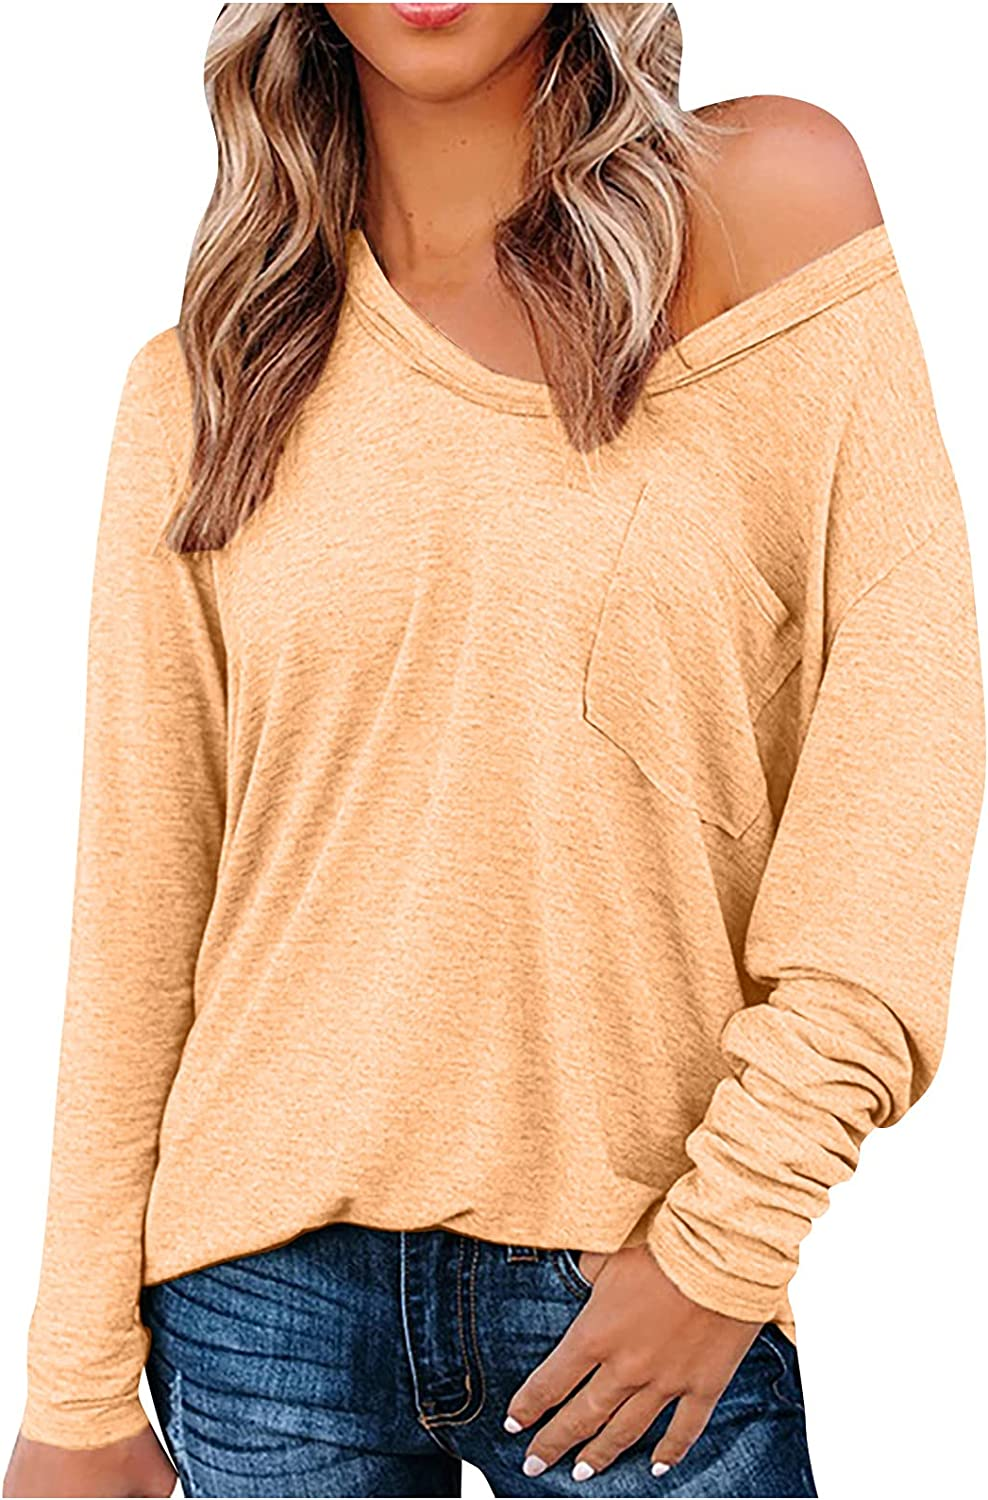 BOXIACEY Women's Casual T-Shirts V-Neck Solid Hedging Sexy Hoodies Loose Long Sleeve Pocket Sweatshirt Tunic Tops